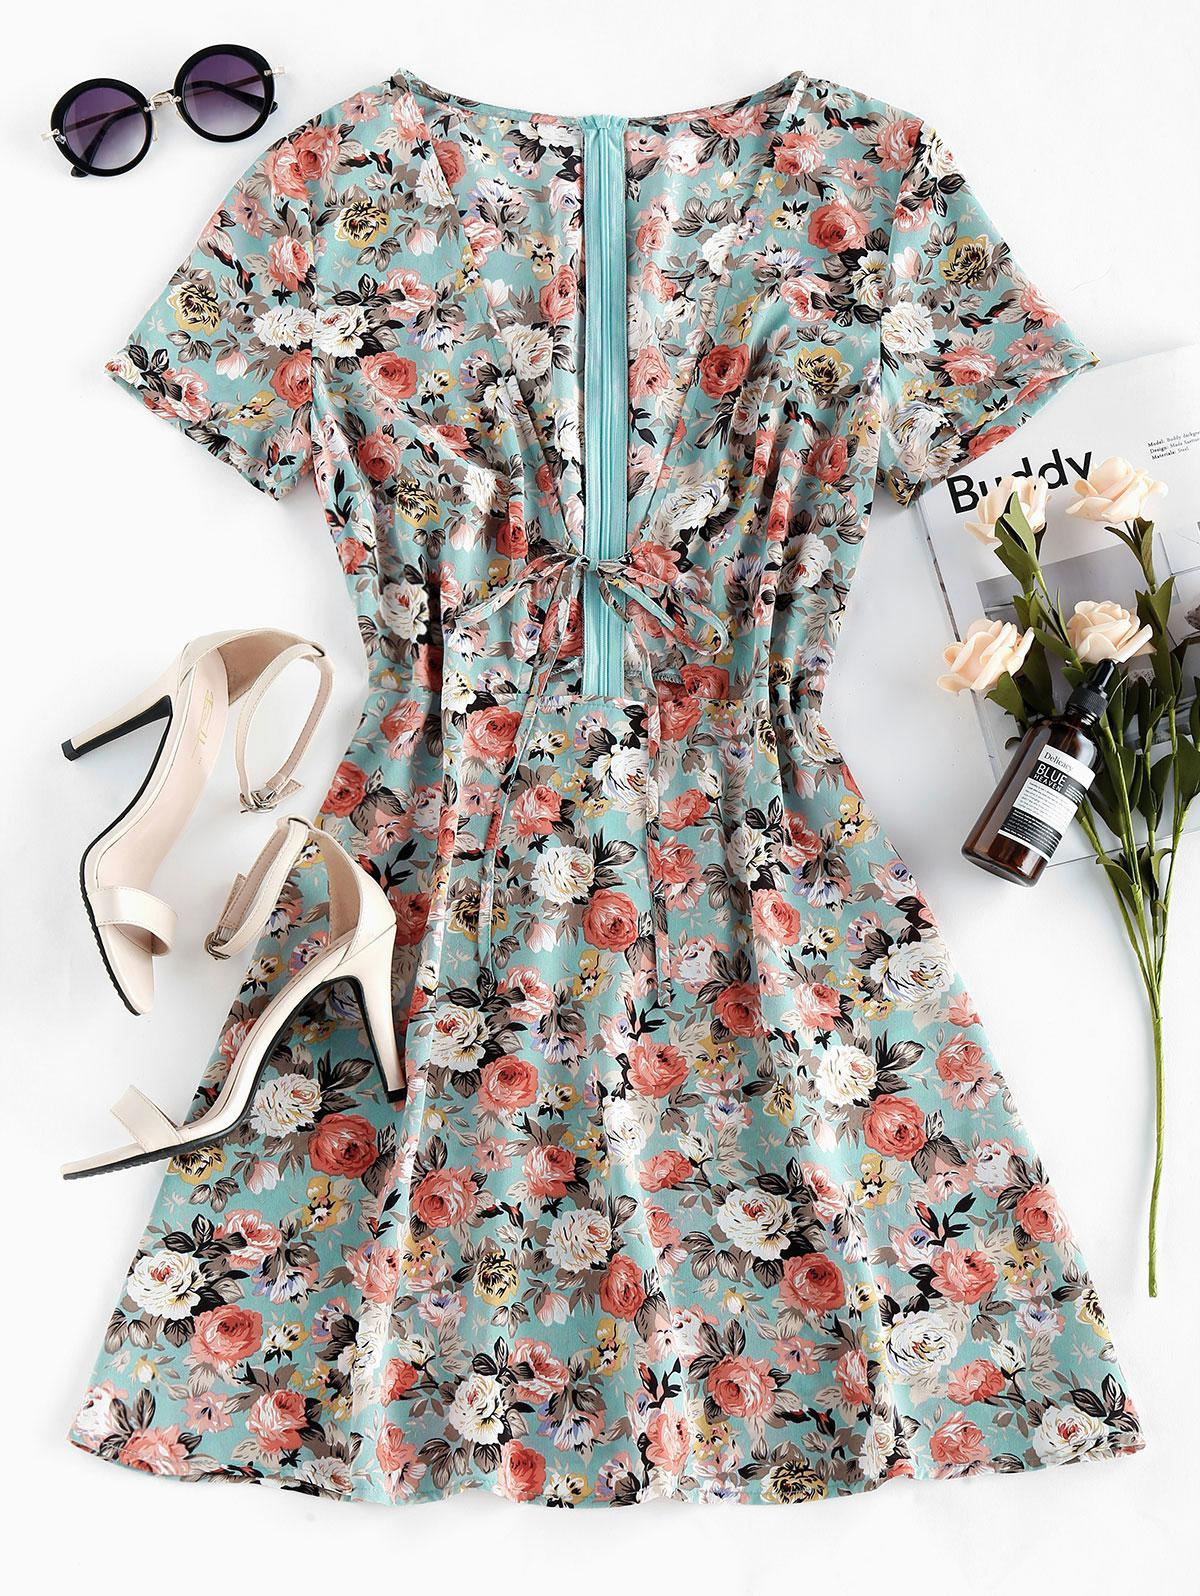 ZAFUL Floral Print Plunging Neck Self Tie Dress